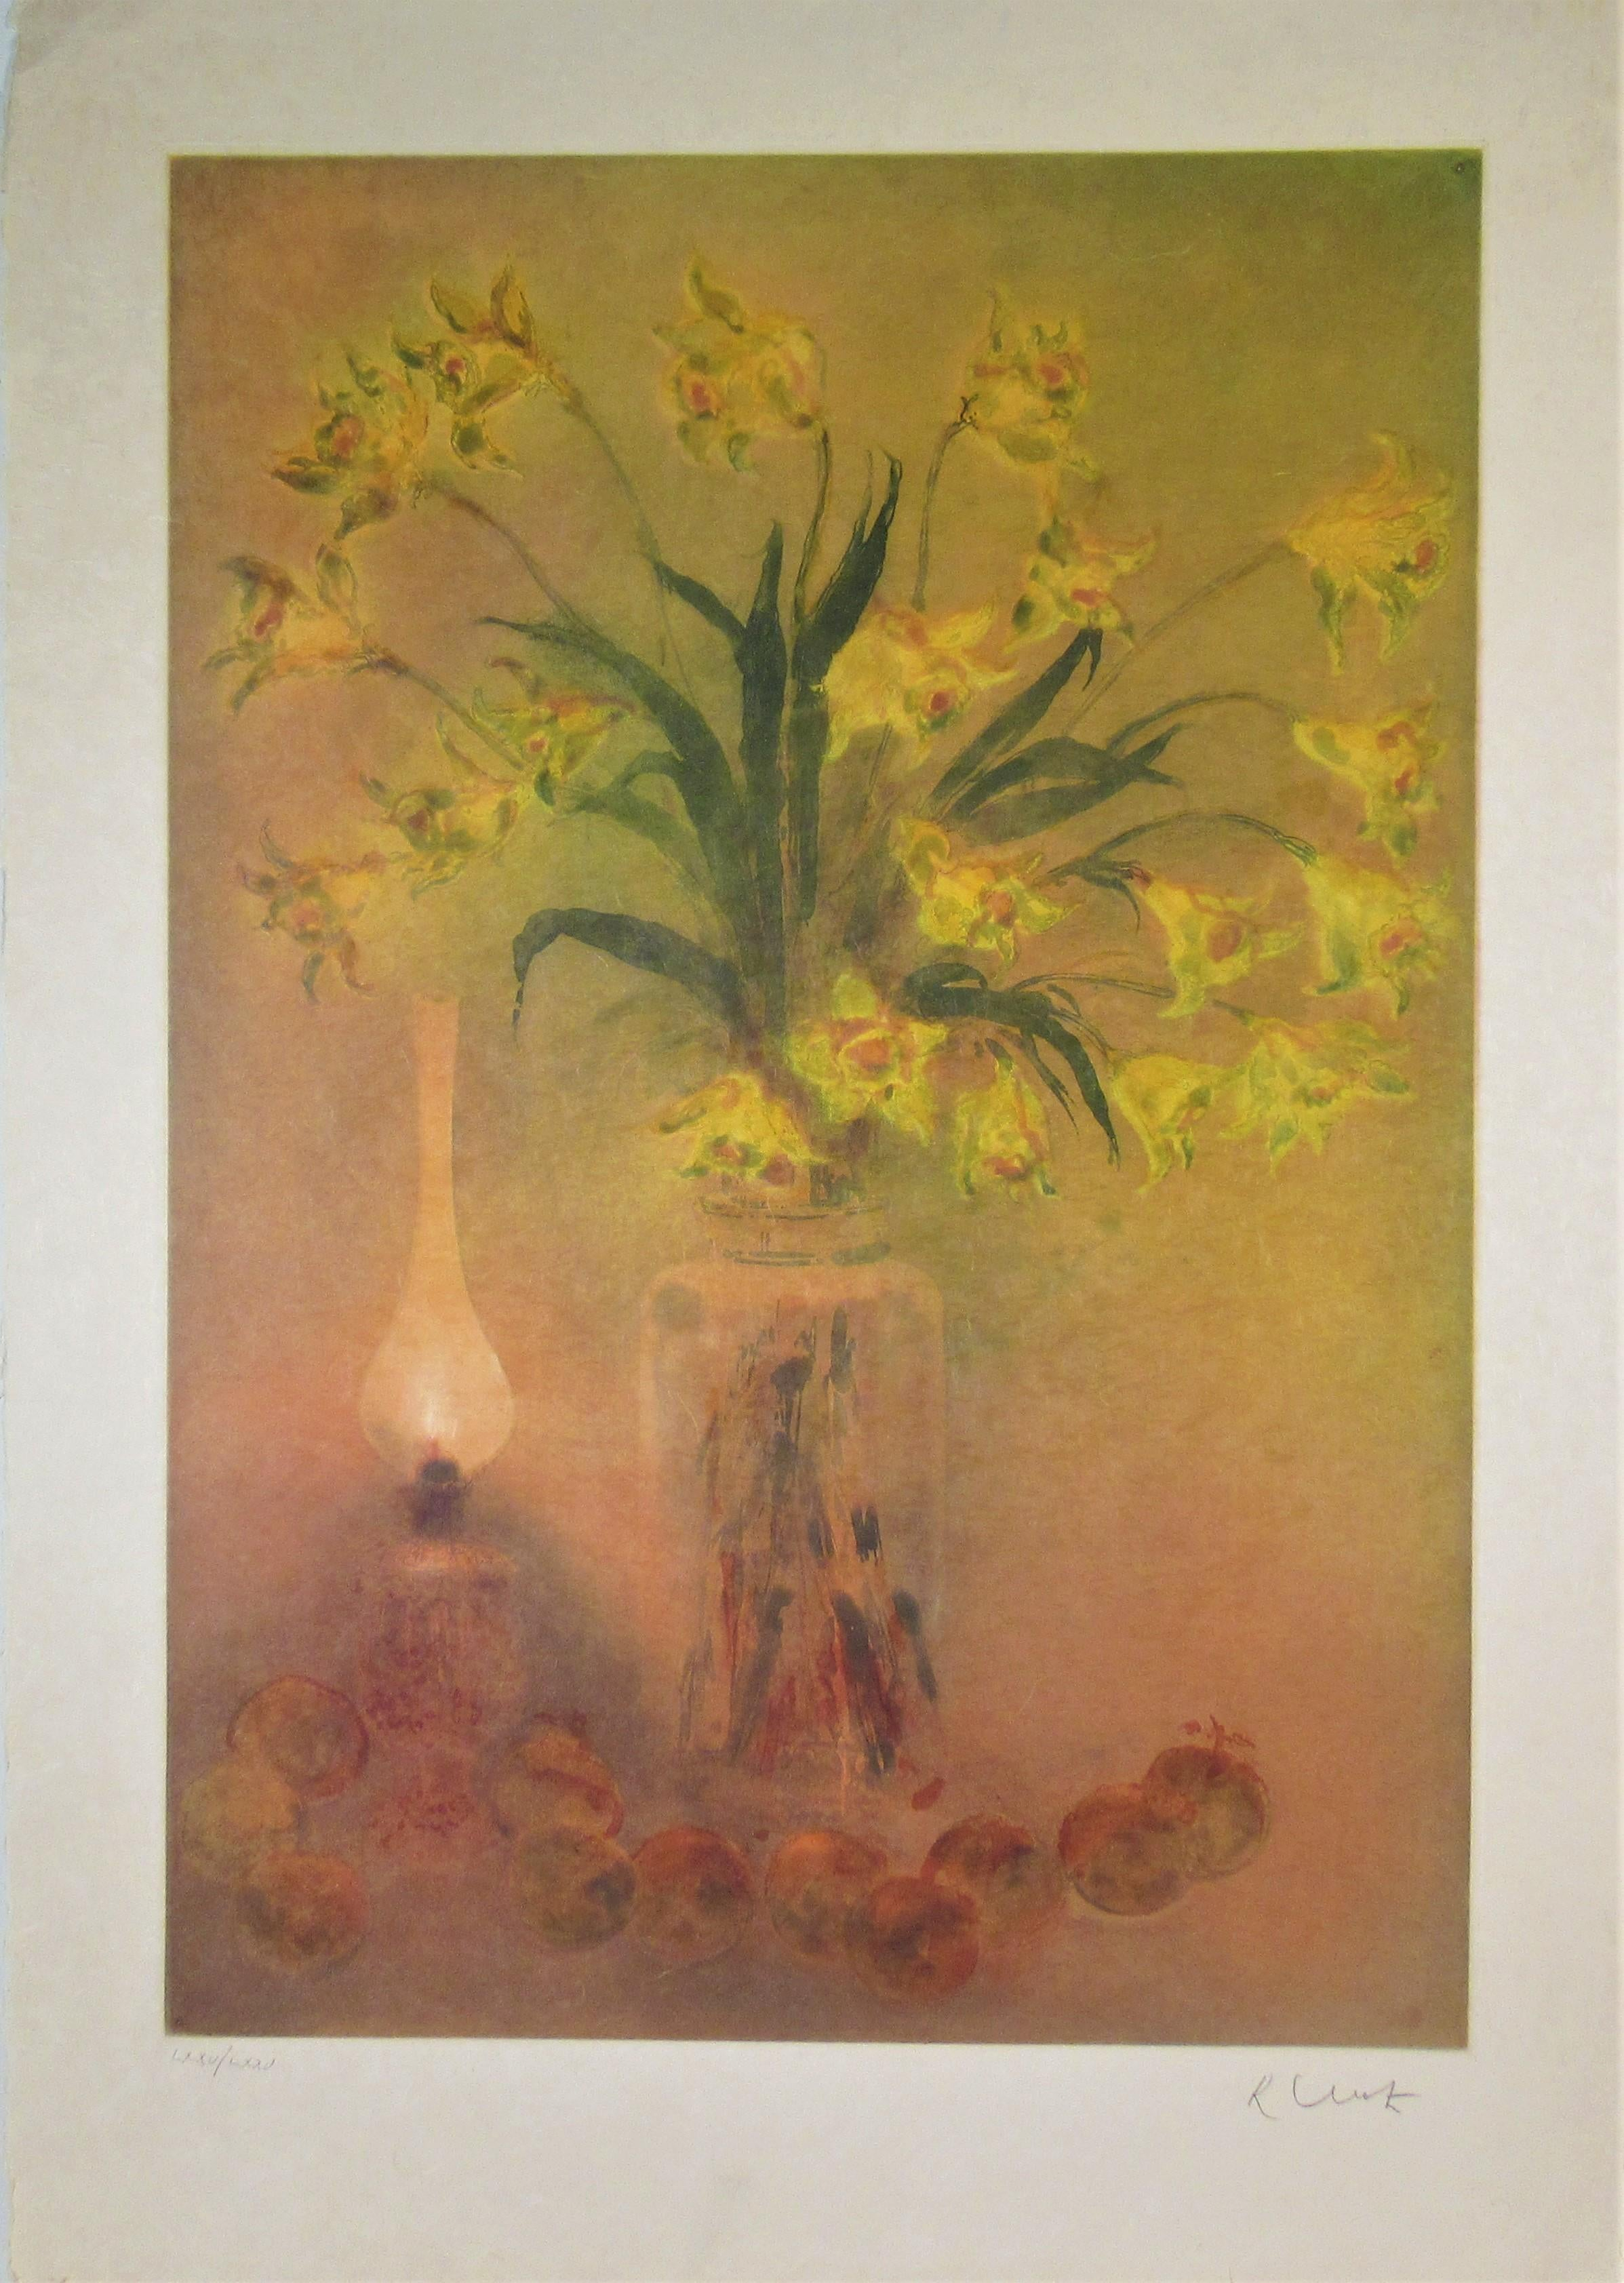 Still Life with Lamp and Fruits, Large aquatint